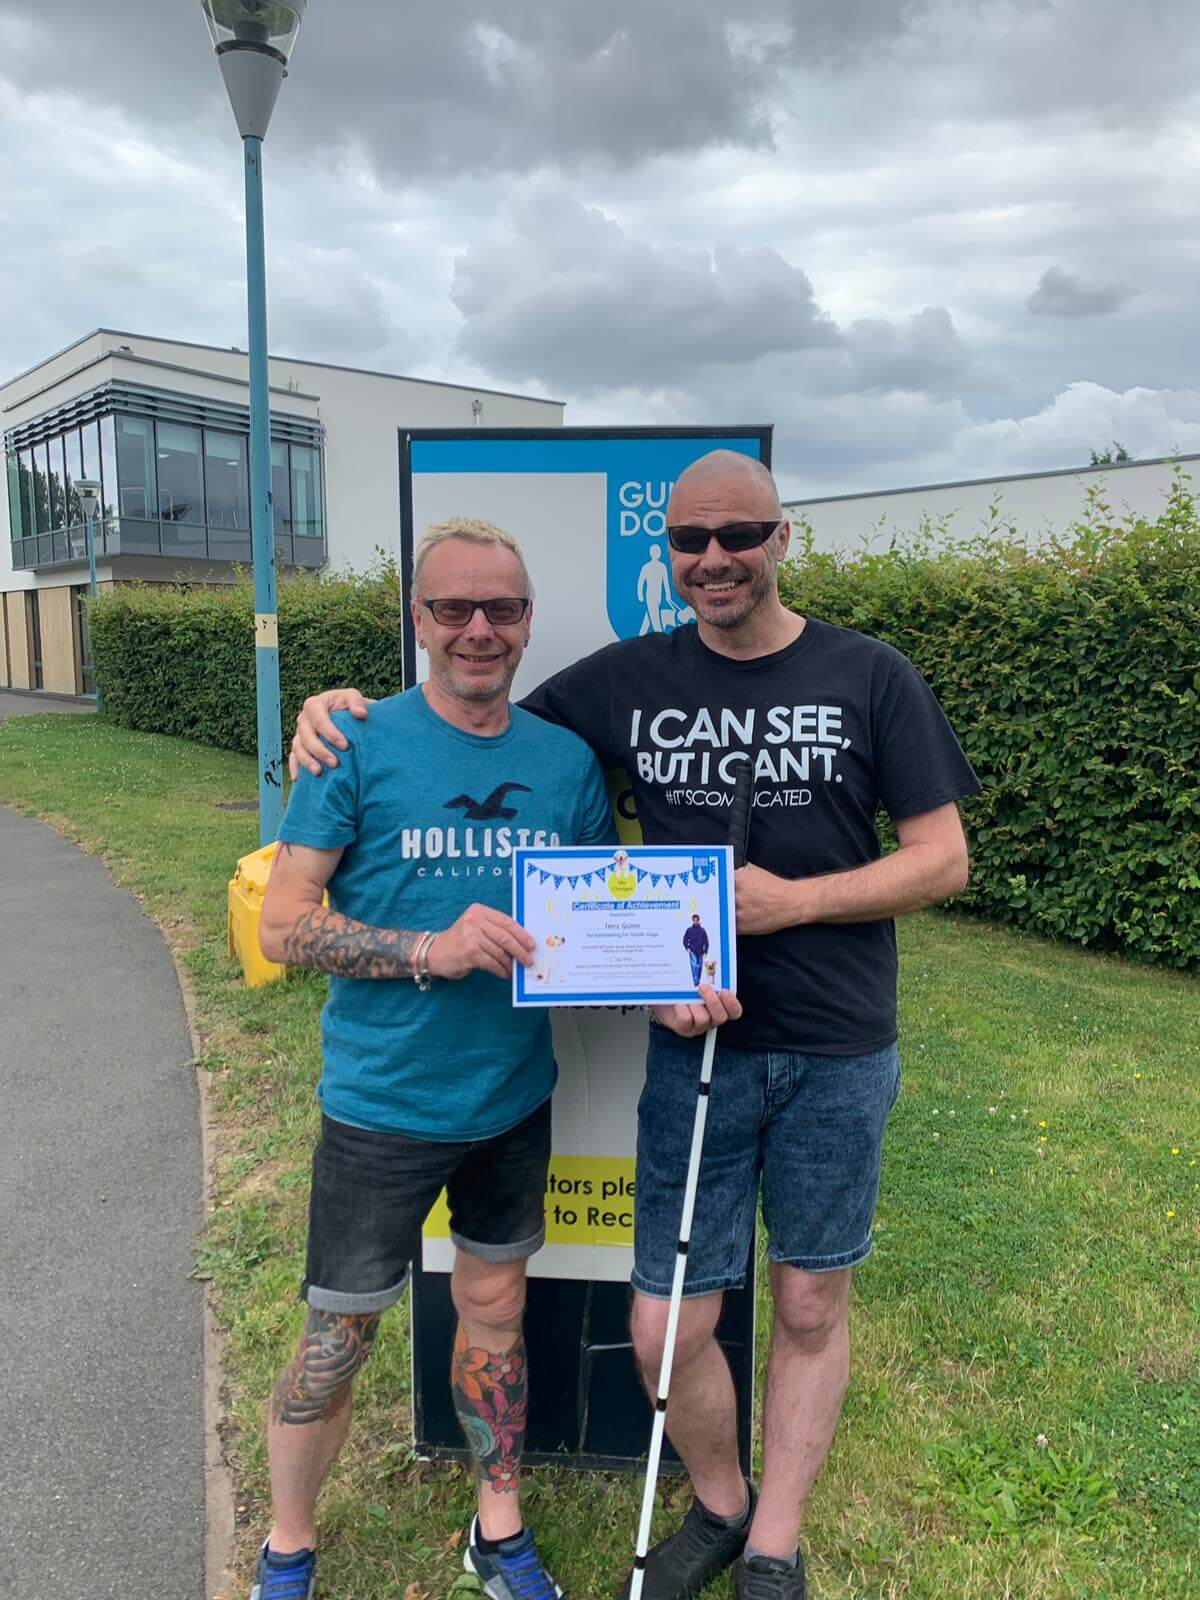 Receiving our certificate of achievement for fundraising for Guide Dogs UK. Two men, one sighted and the other one blind standing in front of The Guide Dogs UK sign. Holding up a certificate of achievement for fundraising for The Guide Dogs UK.